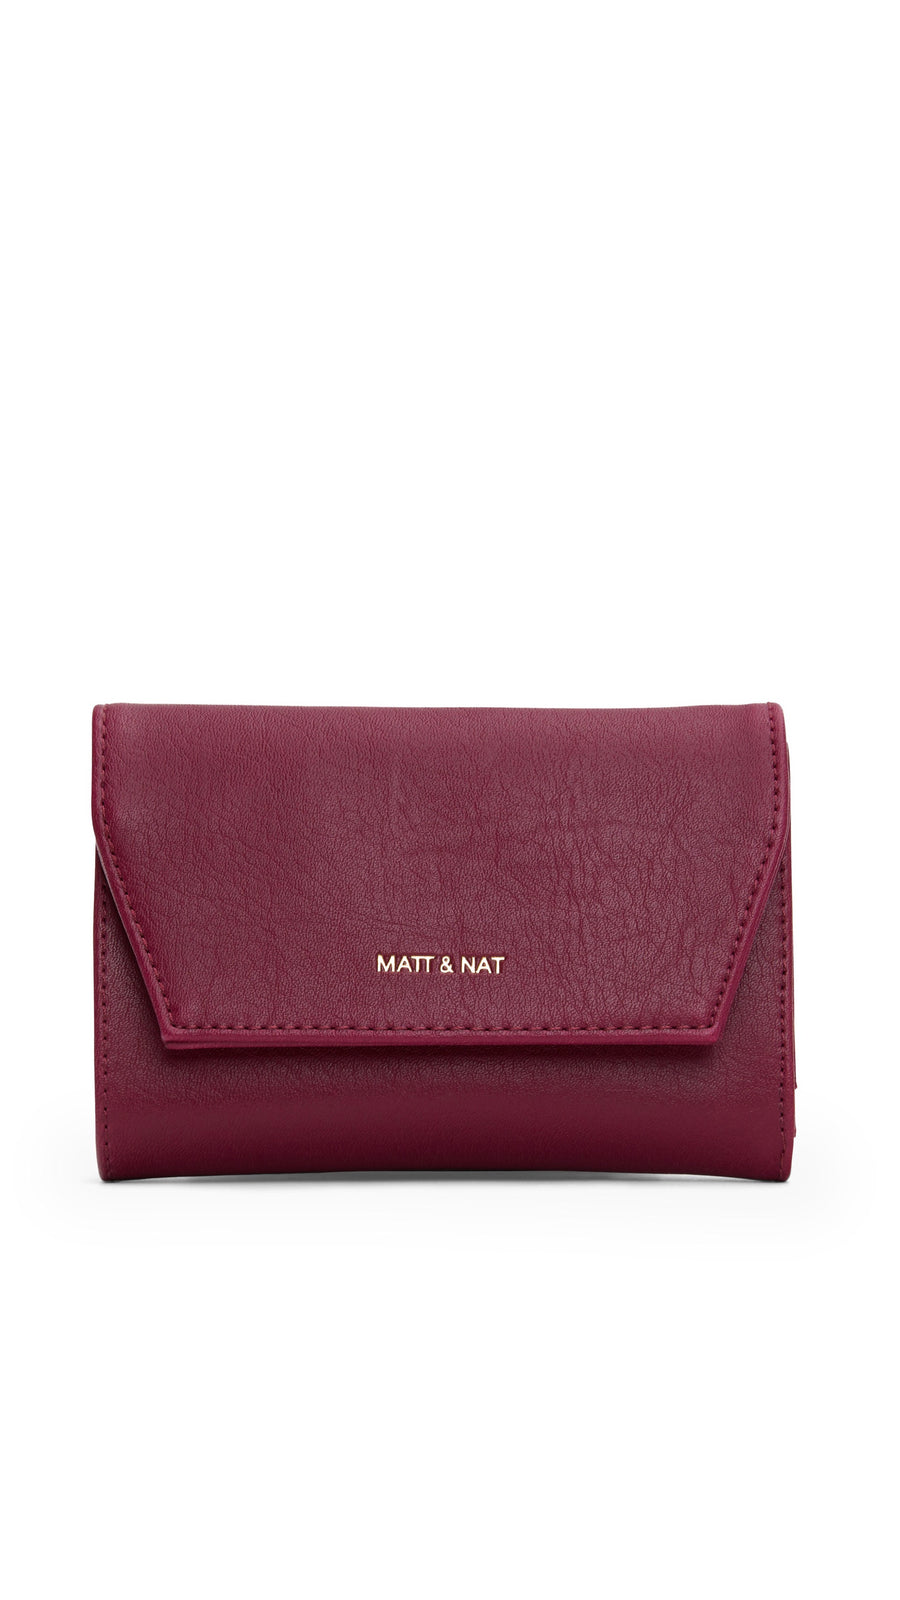 Vera Small Wallet in Garnet by Matt & Nat